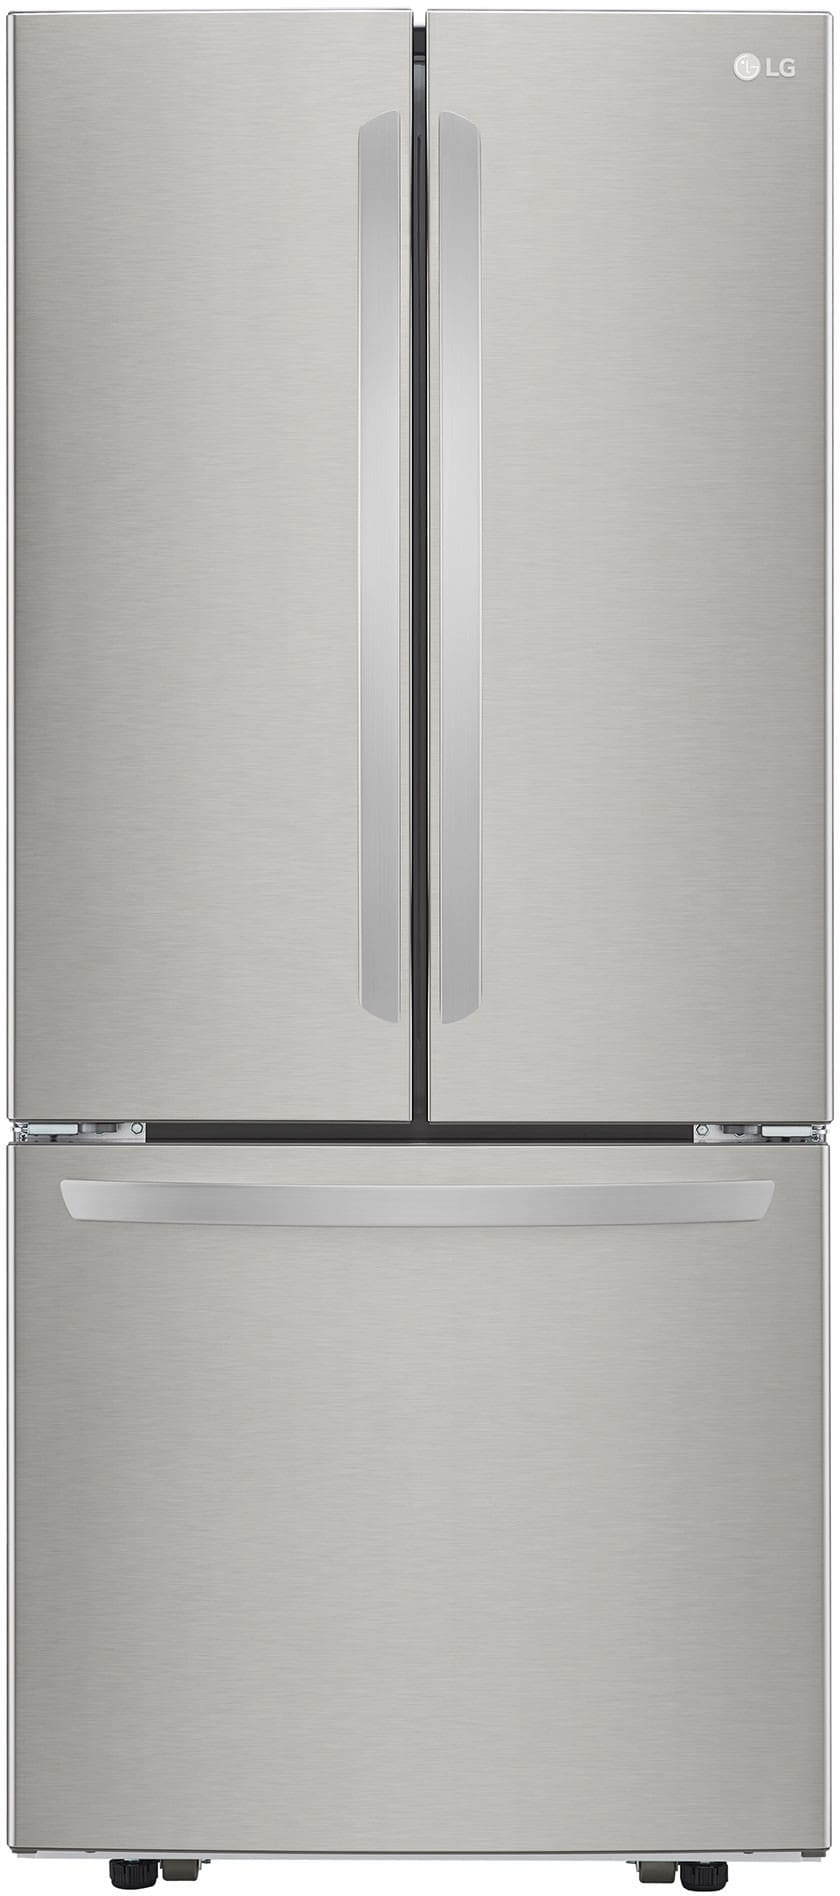 Lg Lfcs22520s 30 Inch French Door Refrigerator With Glide